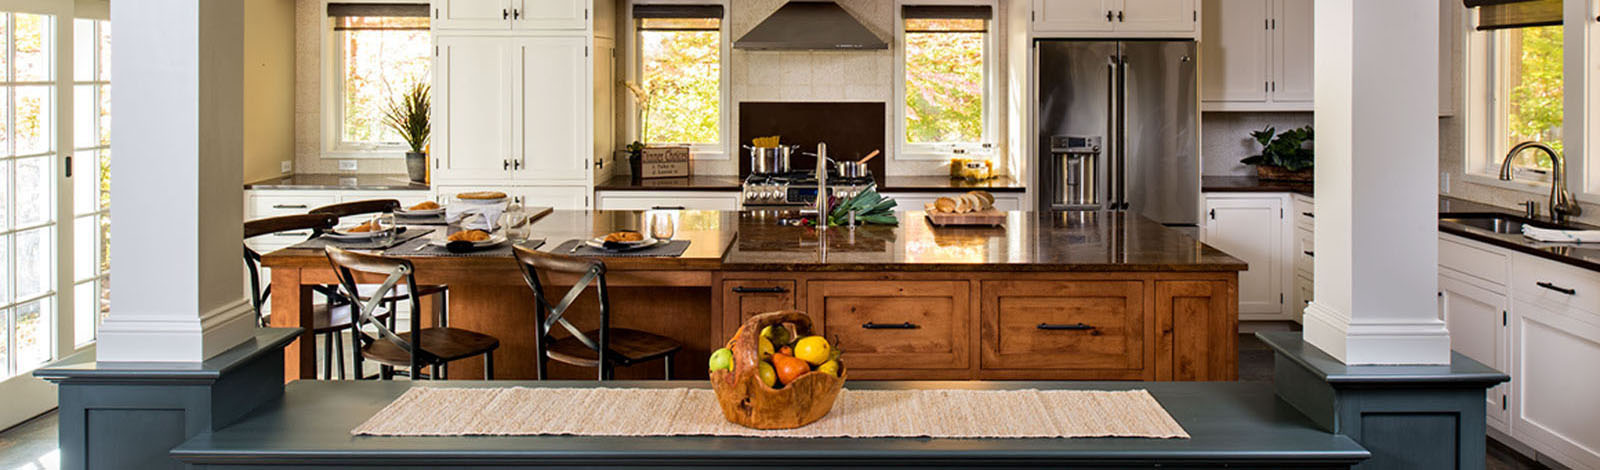 Captivating Handcrafted U0026 Custom Cabinetry Manufacturing | Modern Cabinet ...